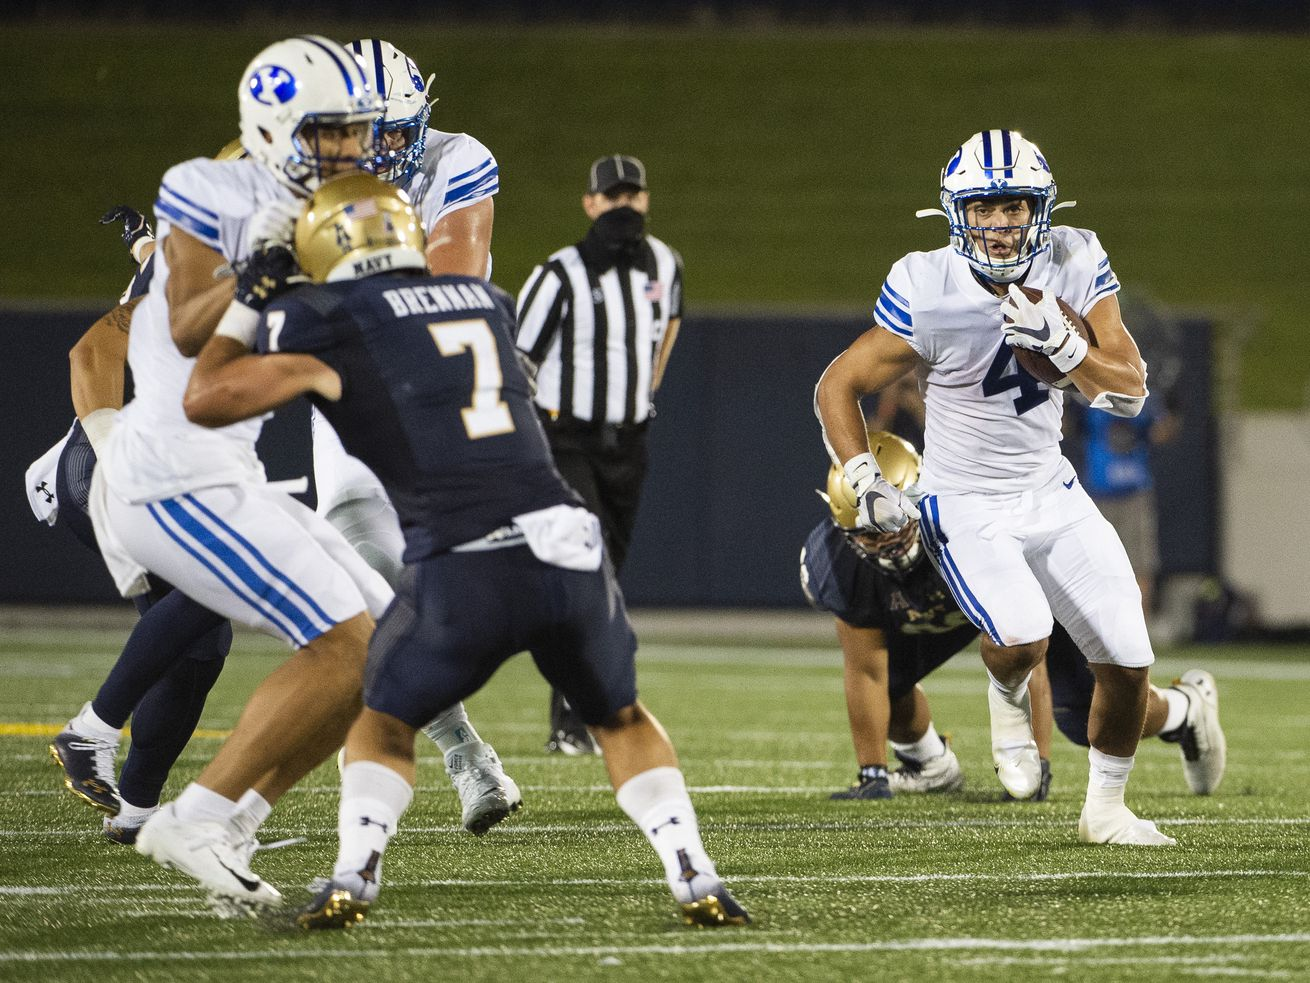 'It's a brutal position': Here's why so many BYU running backs get hurt